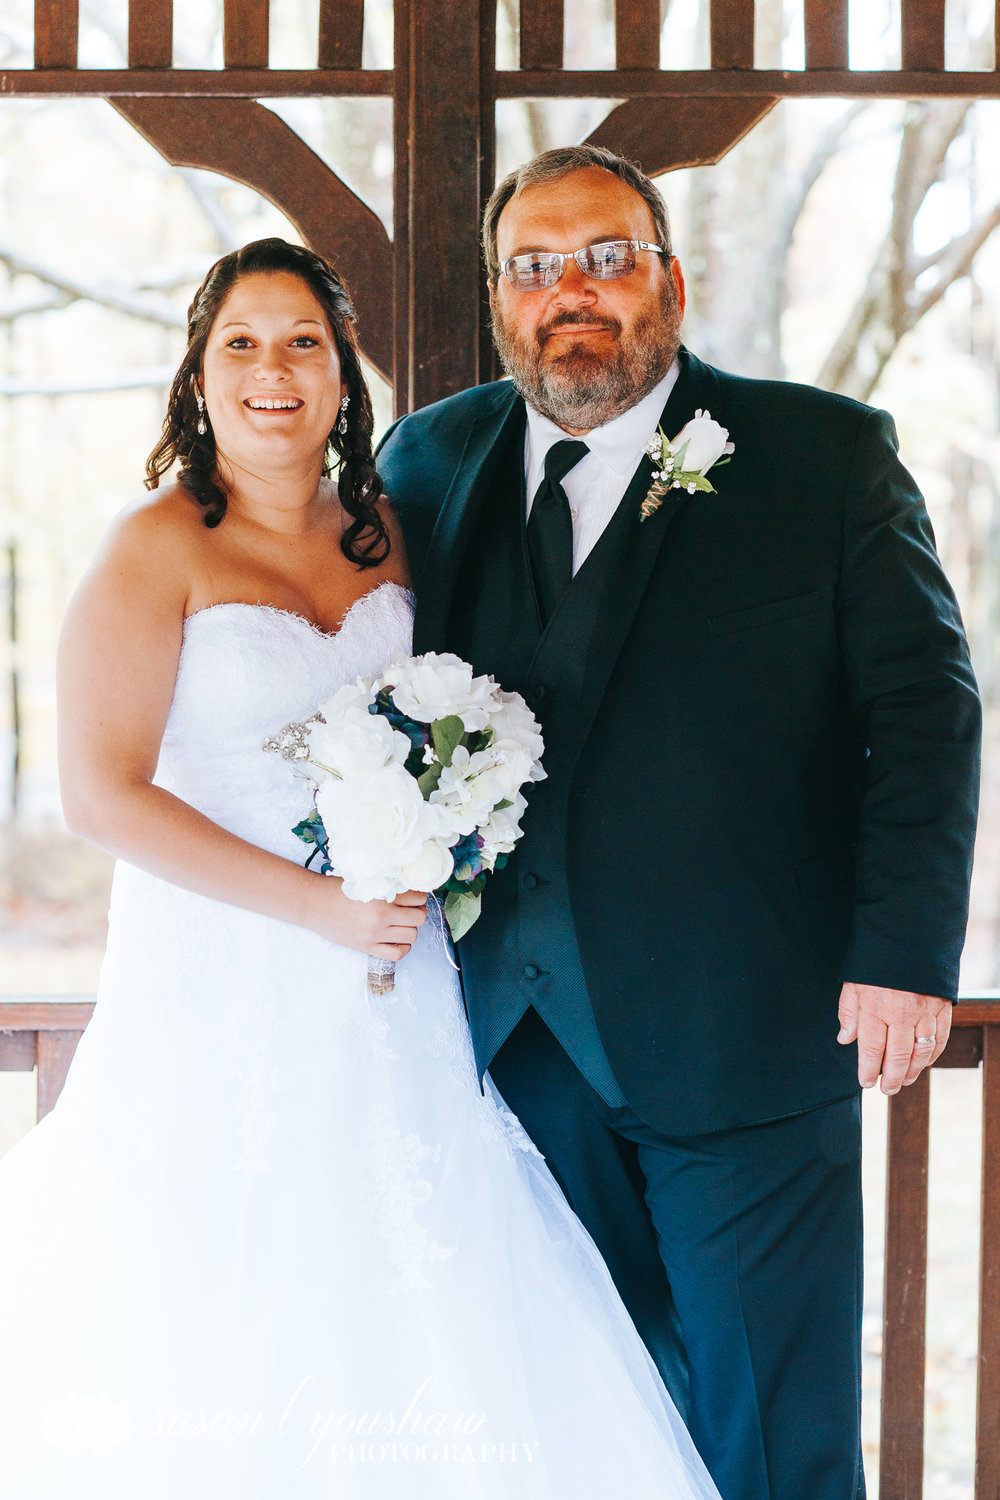 Blog Kayla and Scott 10-27-2018 SLY Photography LLC -103.jpg